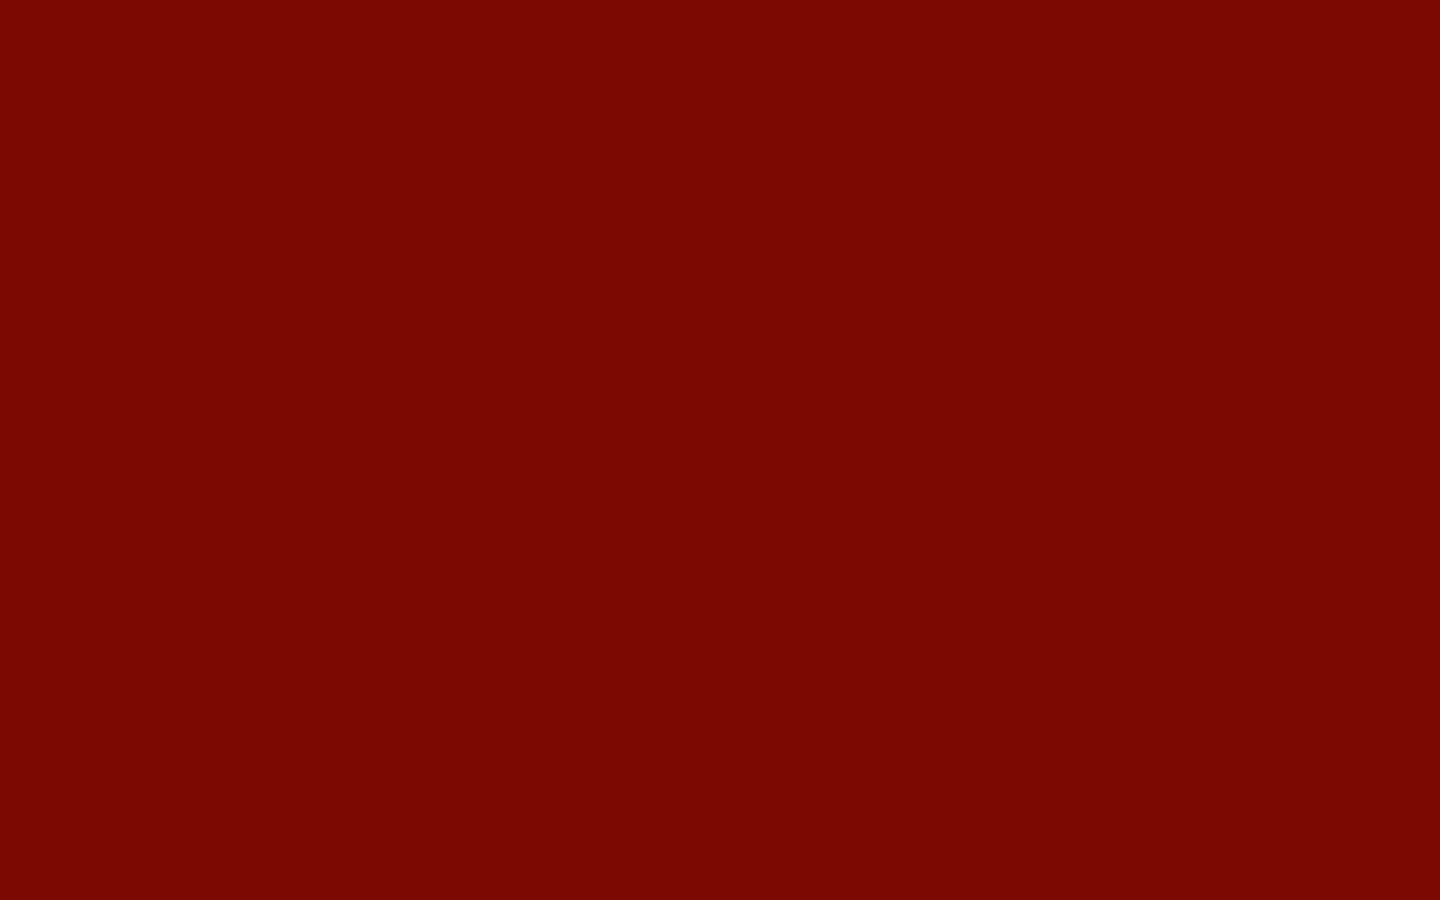 1440x900 Barn Red Solid Color Background